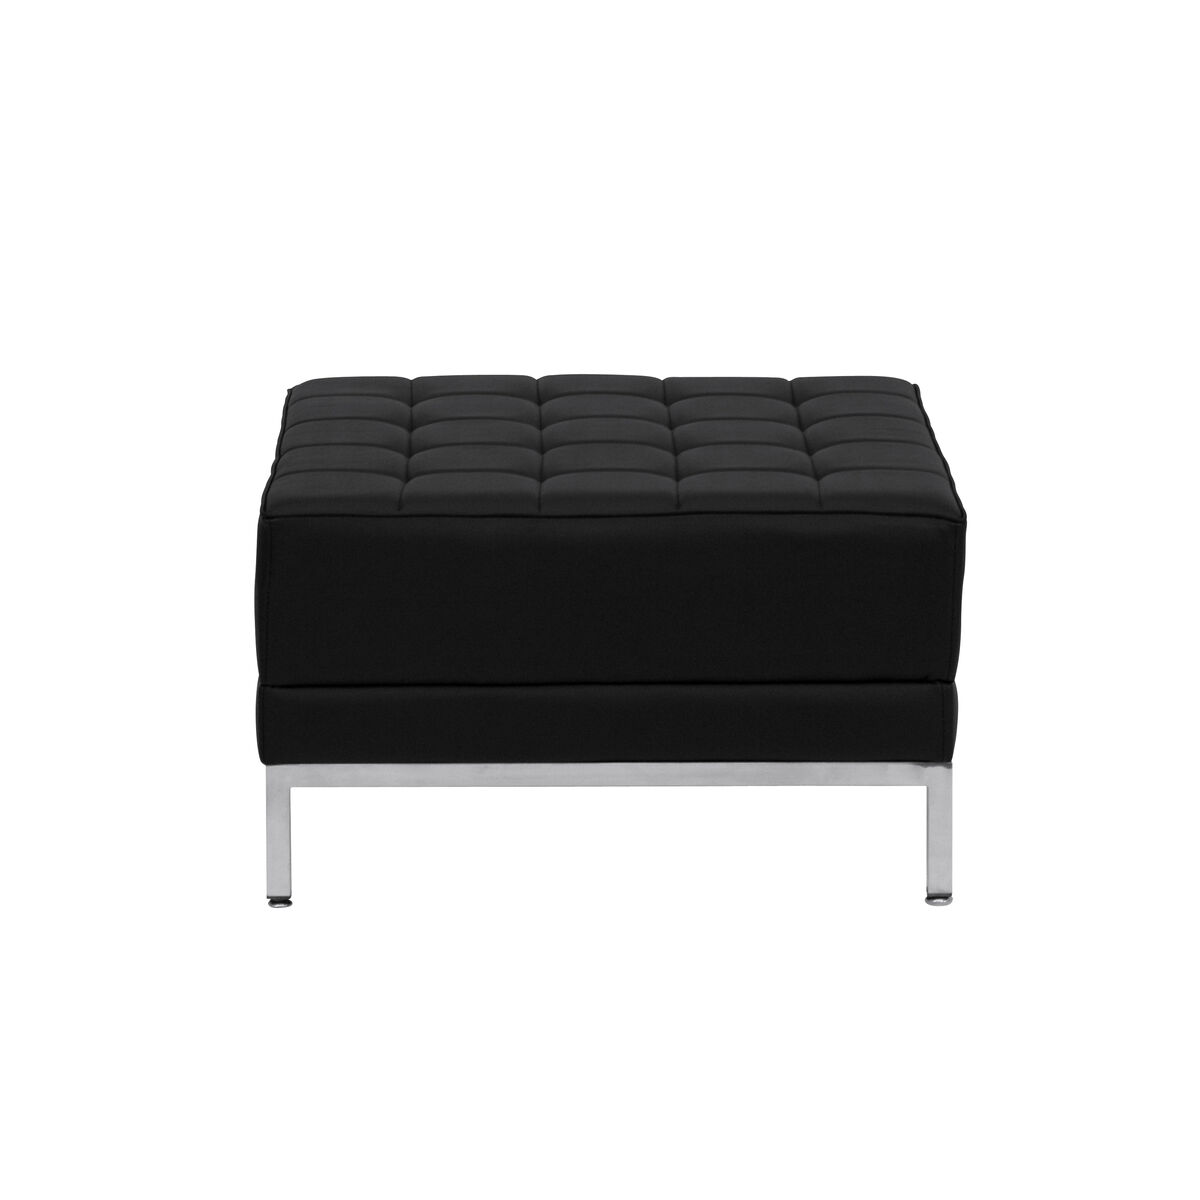 Our Hercules Imagination Series Melrose White Leather Ottoman Is On Now